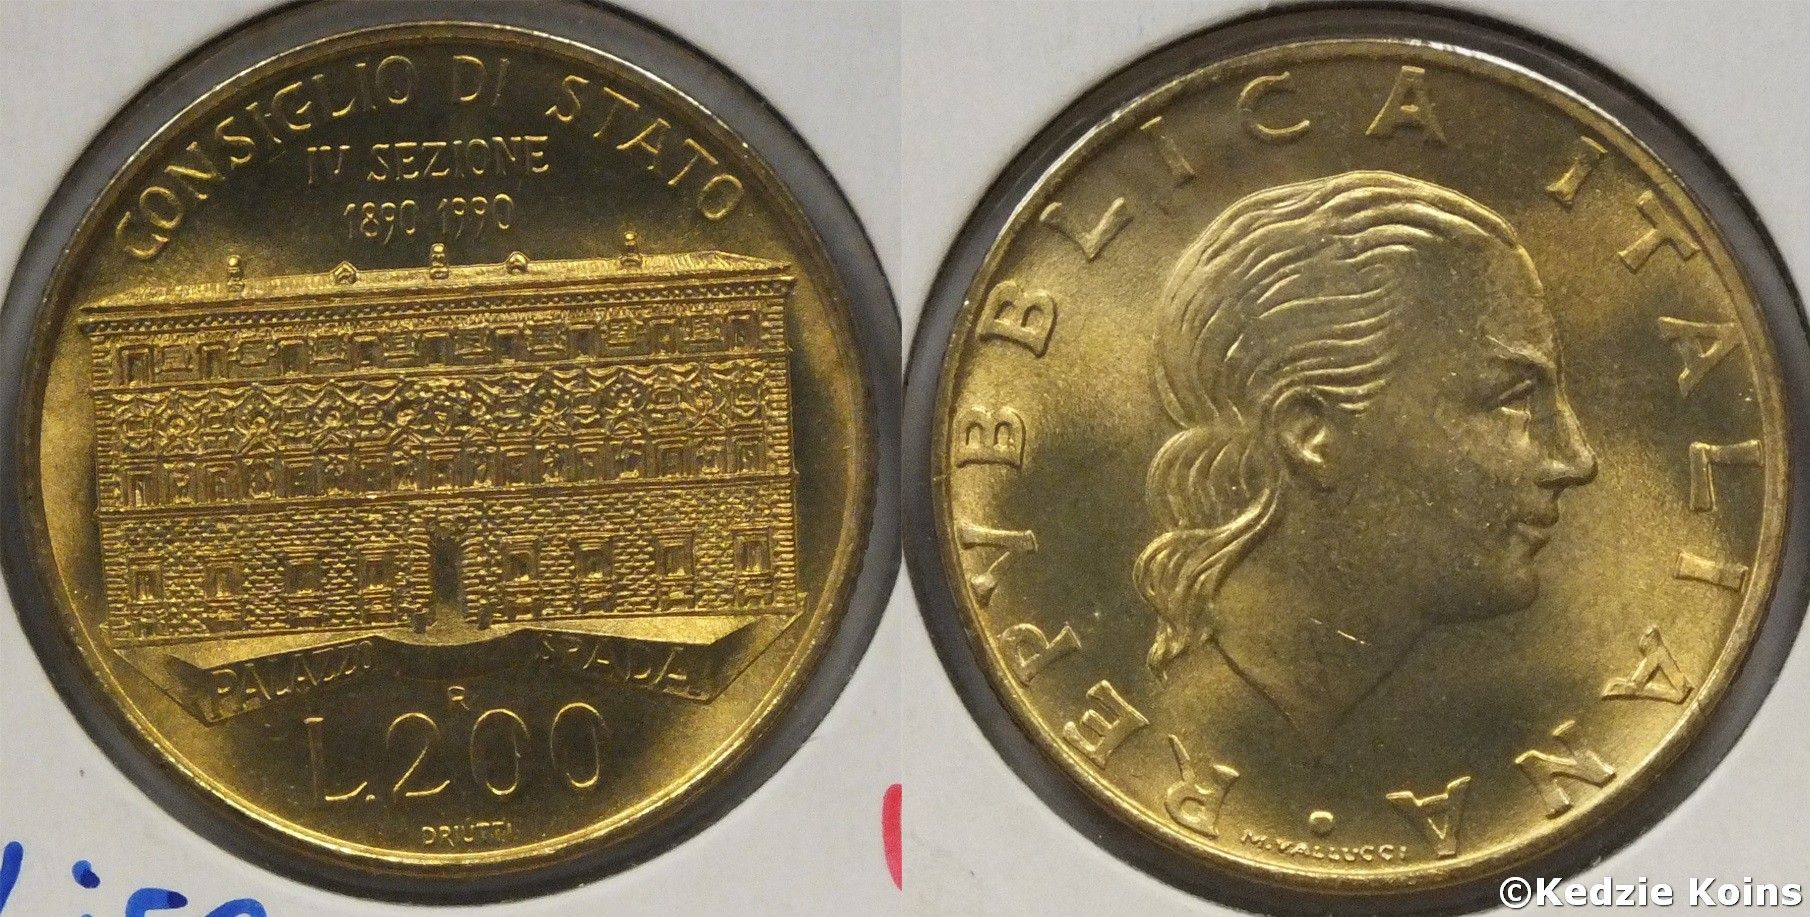 1990 Italy 200 Lire coin  Foreign Coins  Pinterest